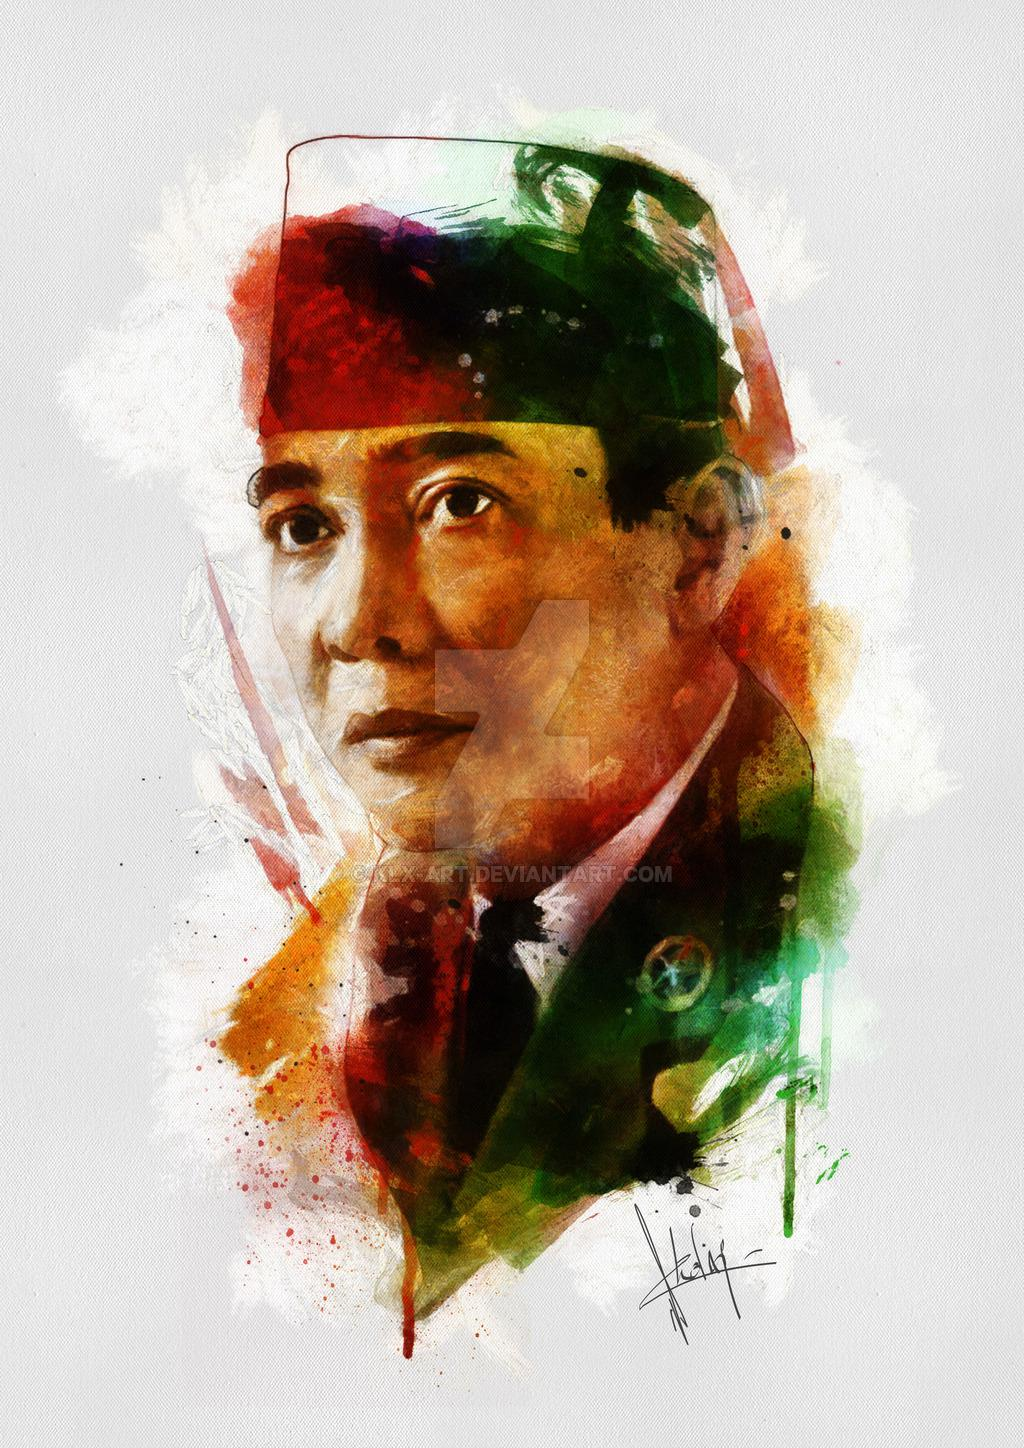 Soekarno Background Background